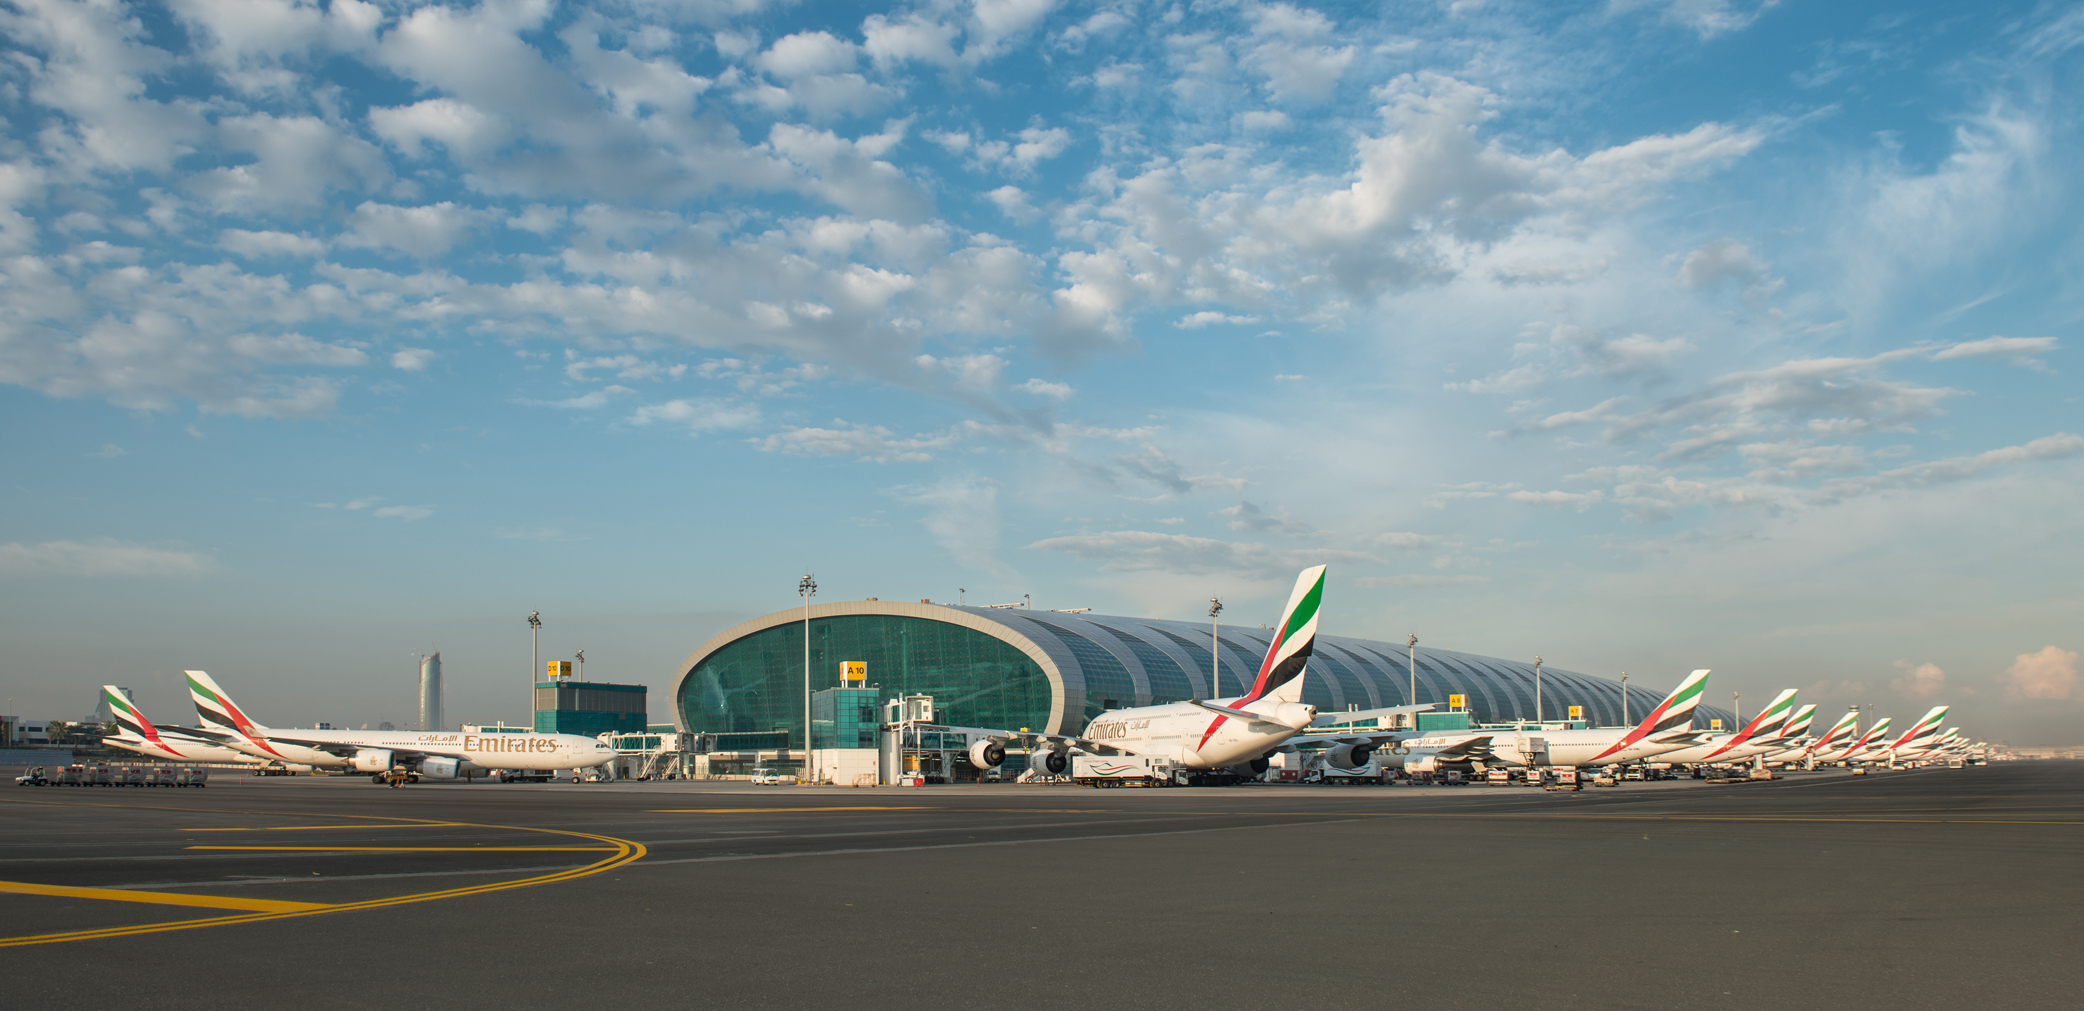 Travel Agency Wallpaper Hd Dubai Airports To Impose A Departure Tax Economy Class